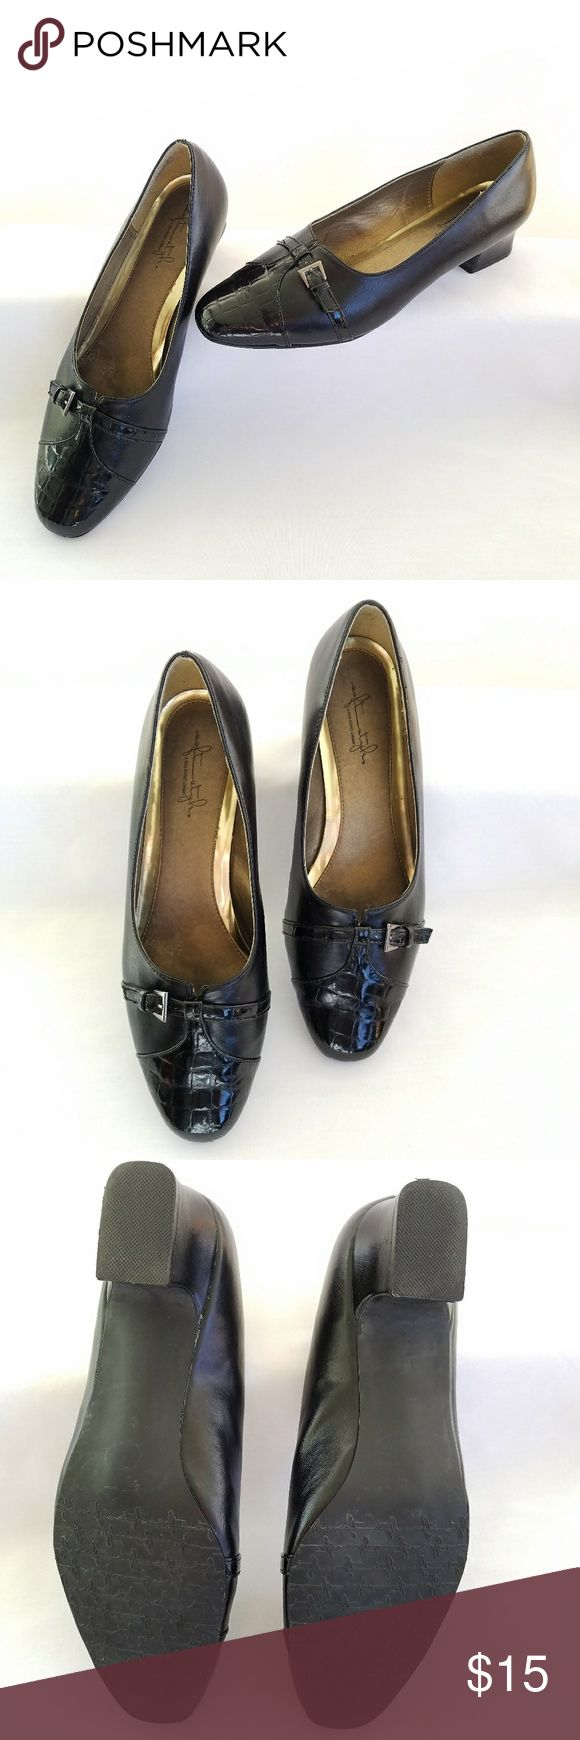 SOFY STYLE HUSH PUPPIES Dark Navy Black 11W Pumps JUST IN DESCRIPTION TO COME SOON. Hush Puppies Shoes Heels